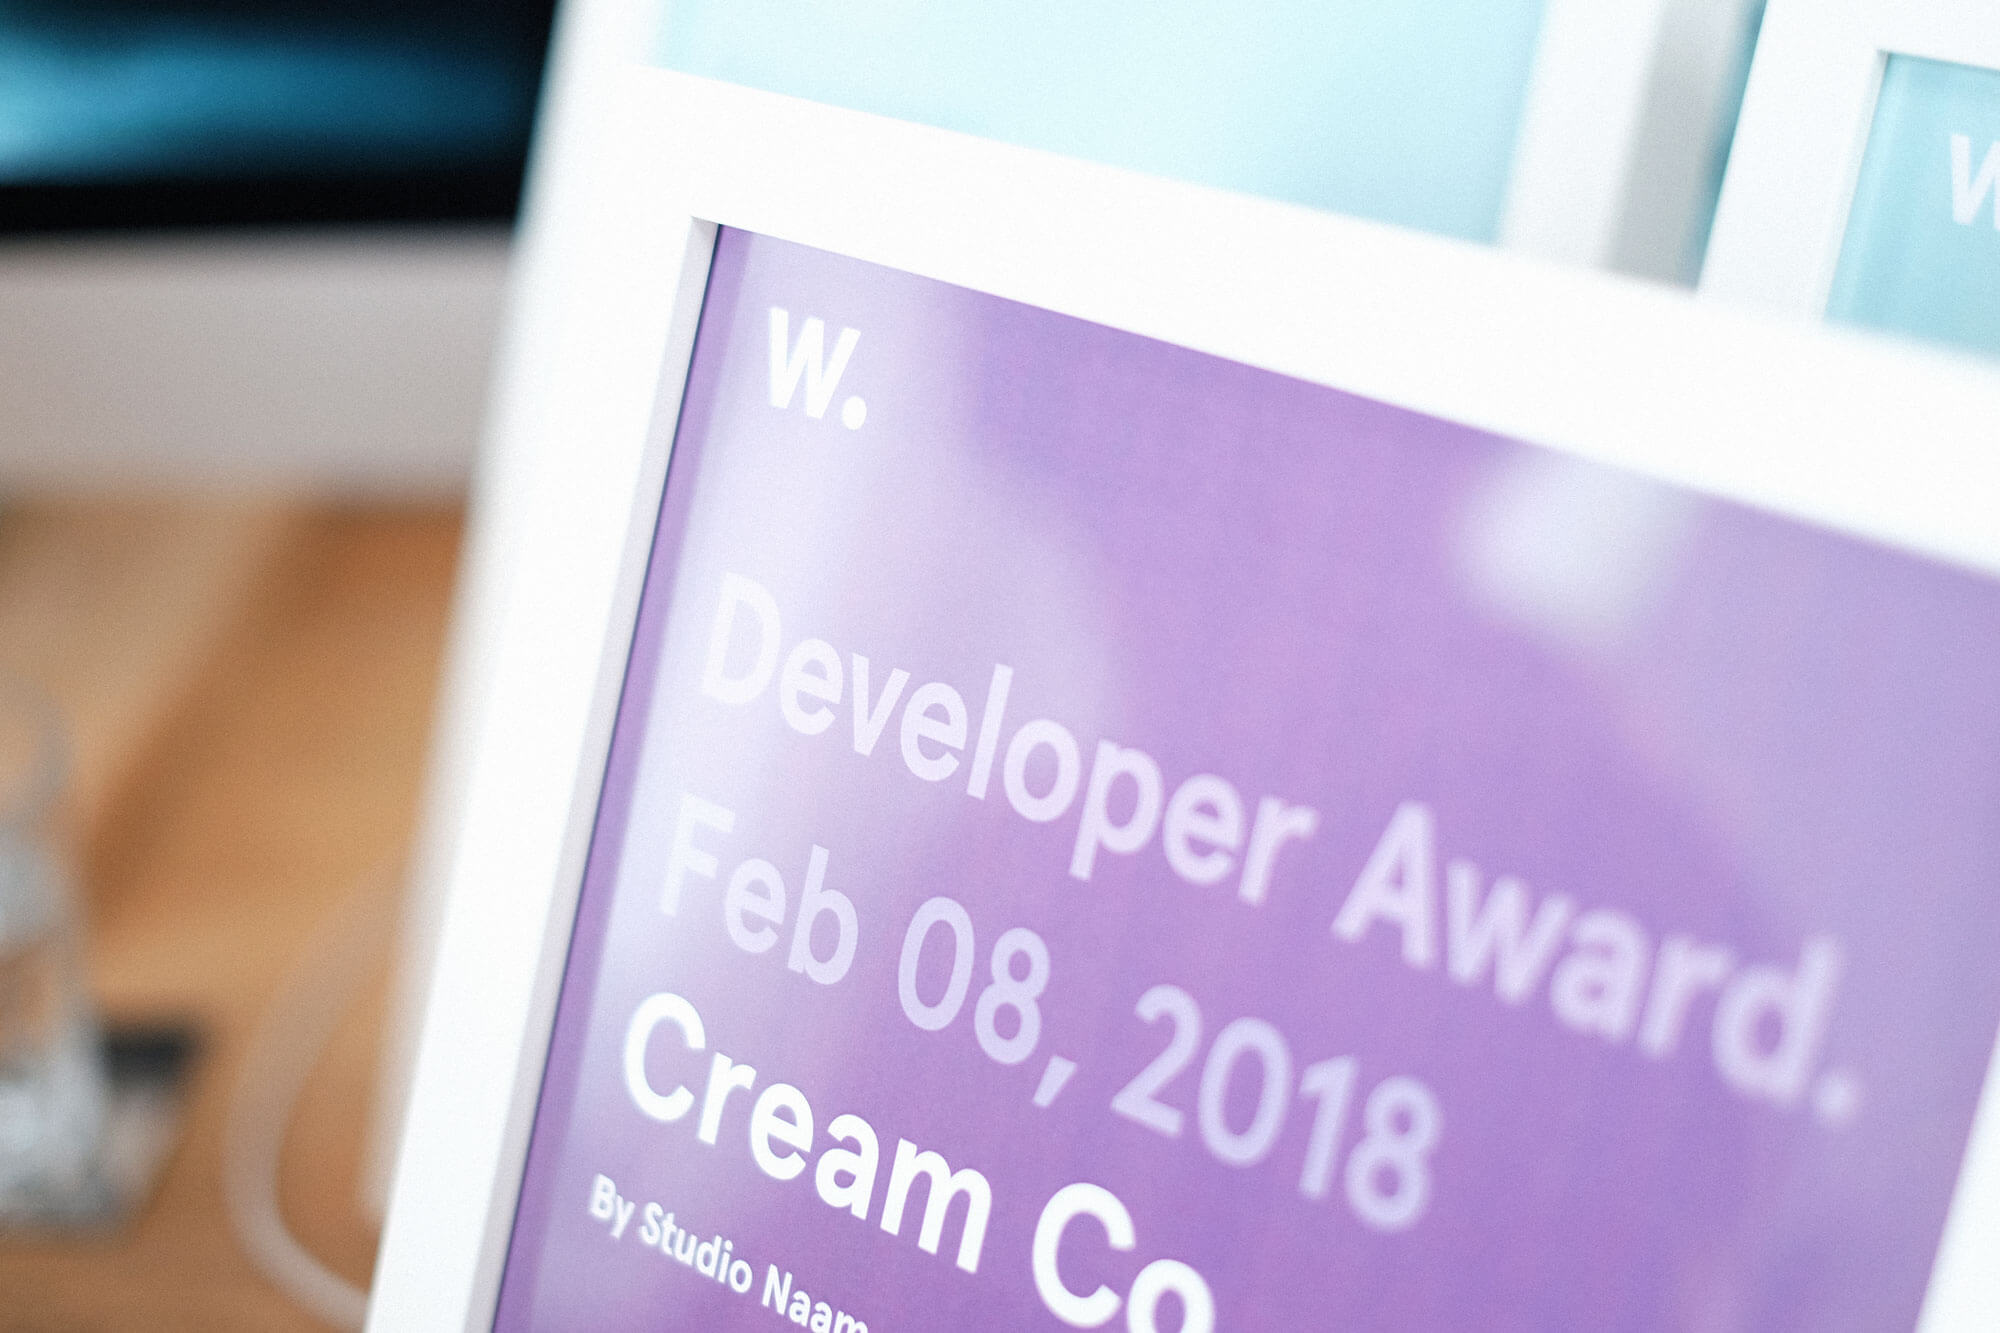 Developer award van Awwwards voor de Cream Co. website